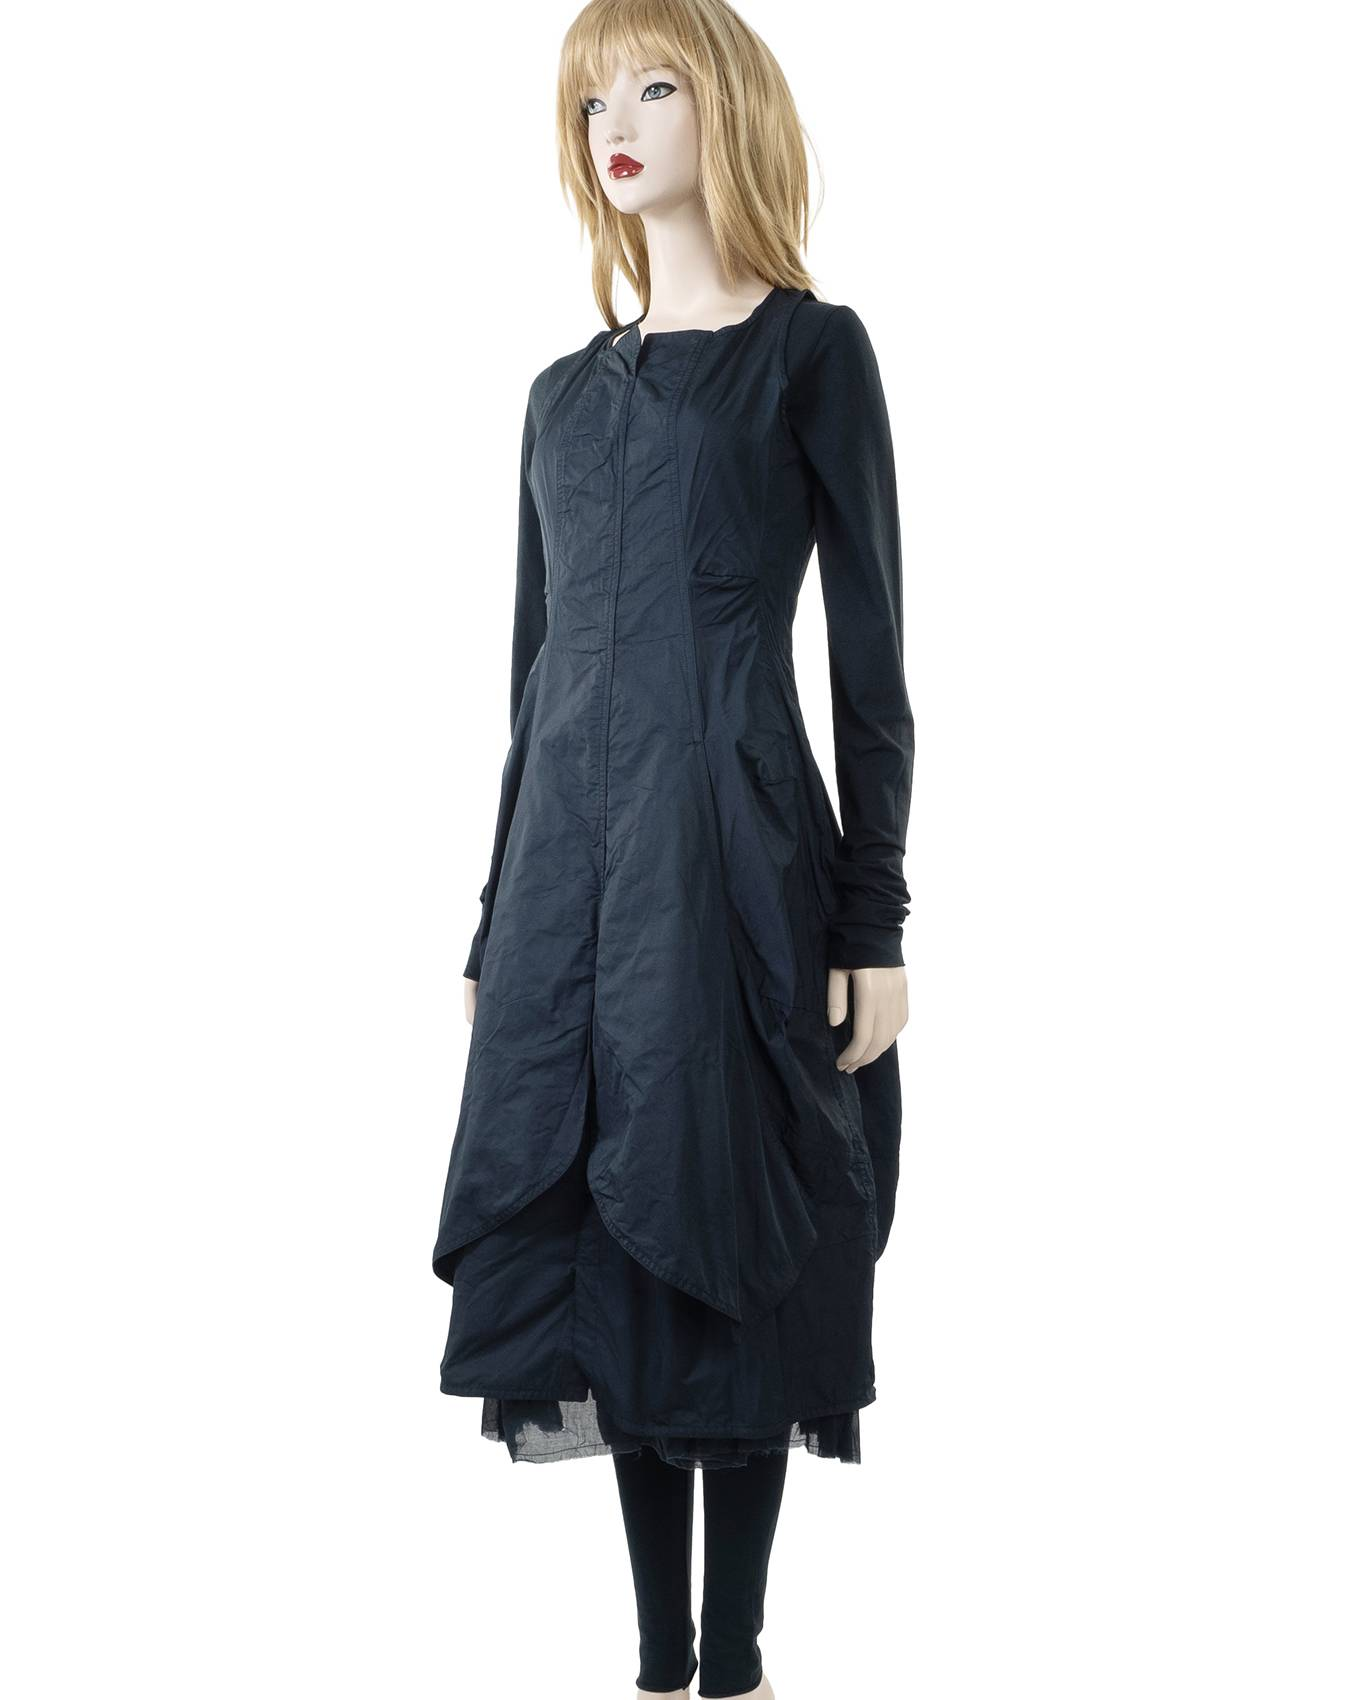 LONG-SHIRT 330 05 11-360 | RUNDHOLZ BLACK LABEL